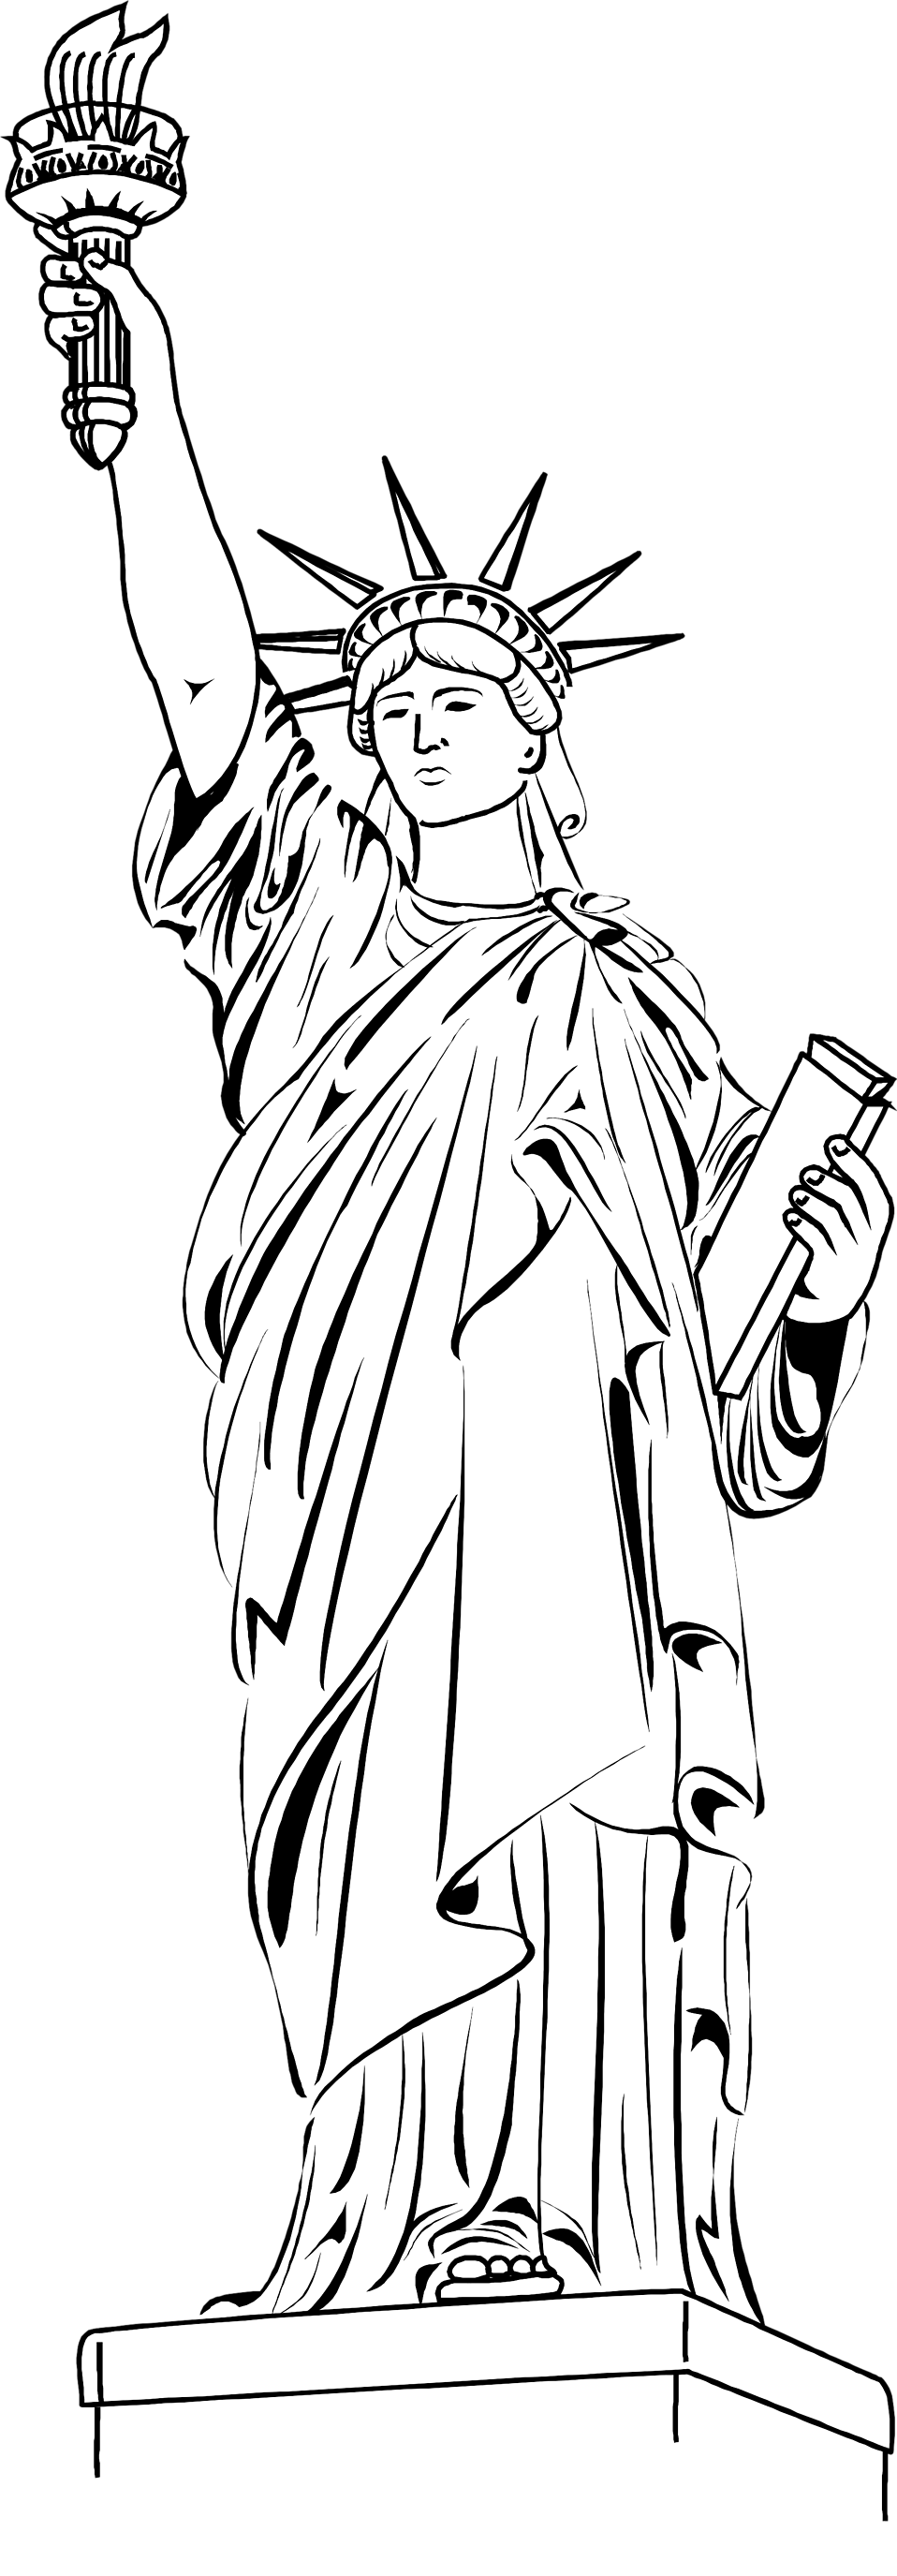 Illustration of the Statue of Liberty : Free Stock Photo